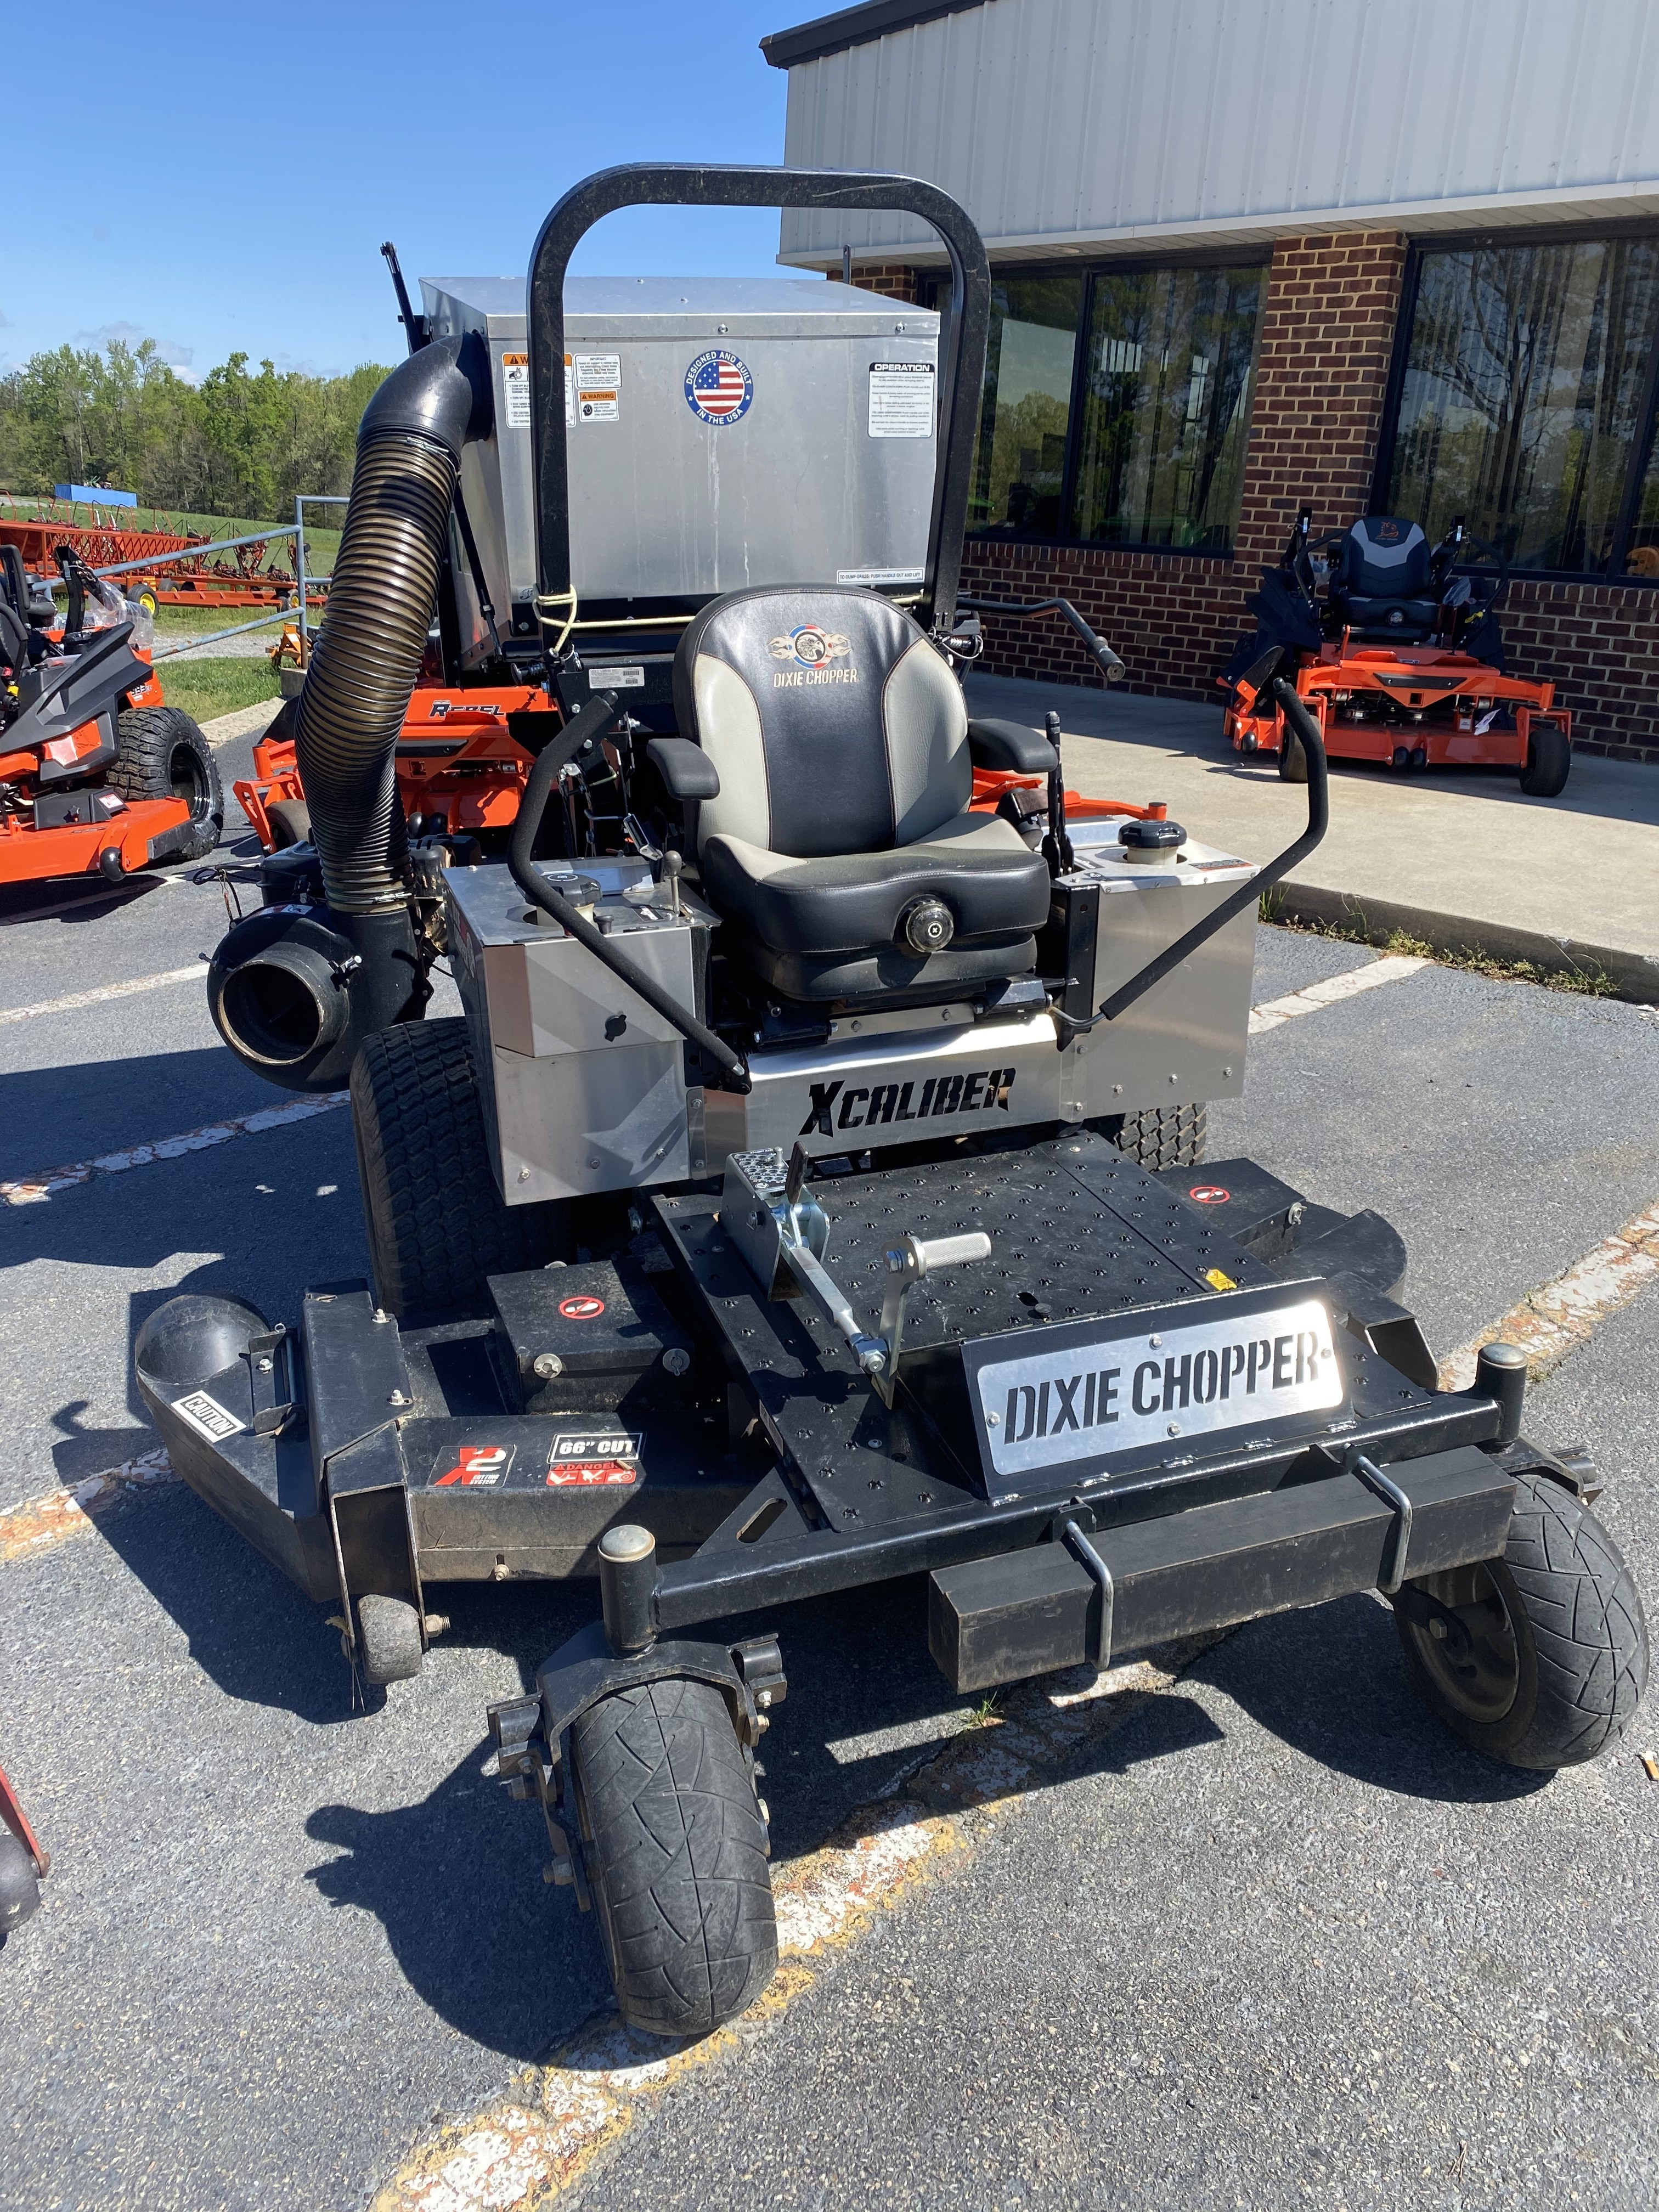 Used, 2018, Dixie Chopper, XCaliber™ Series, Lawn Mowers